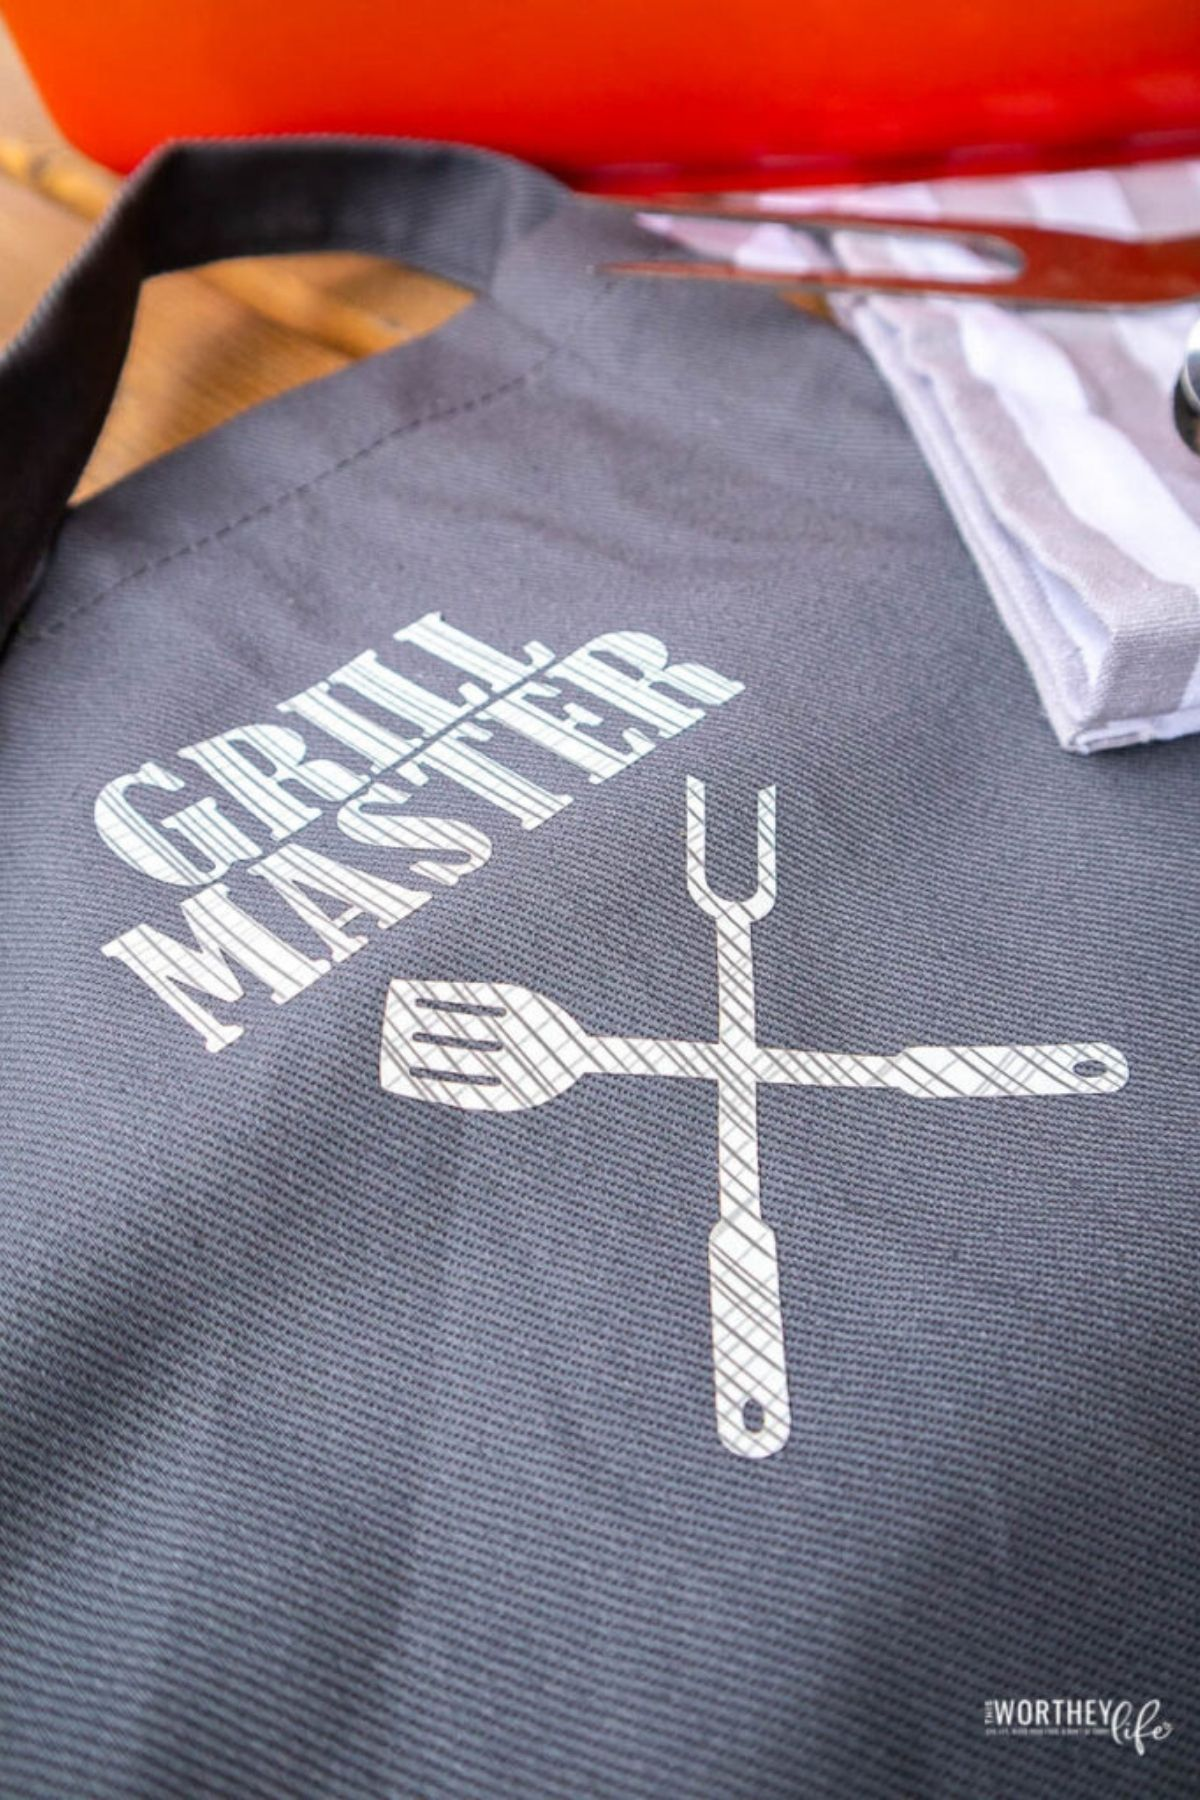 Grilling master apron